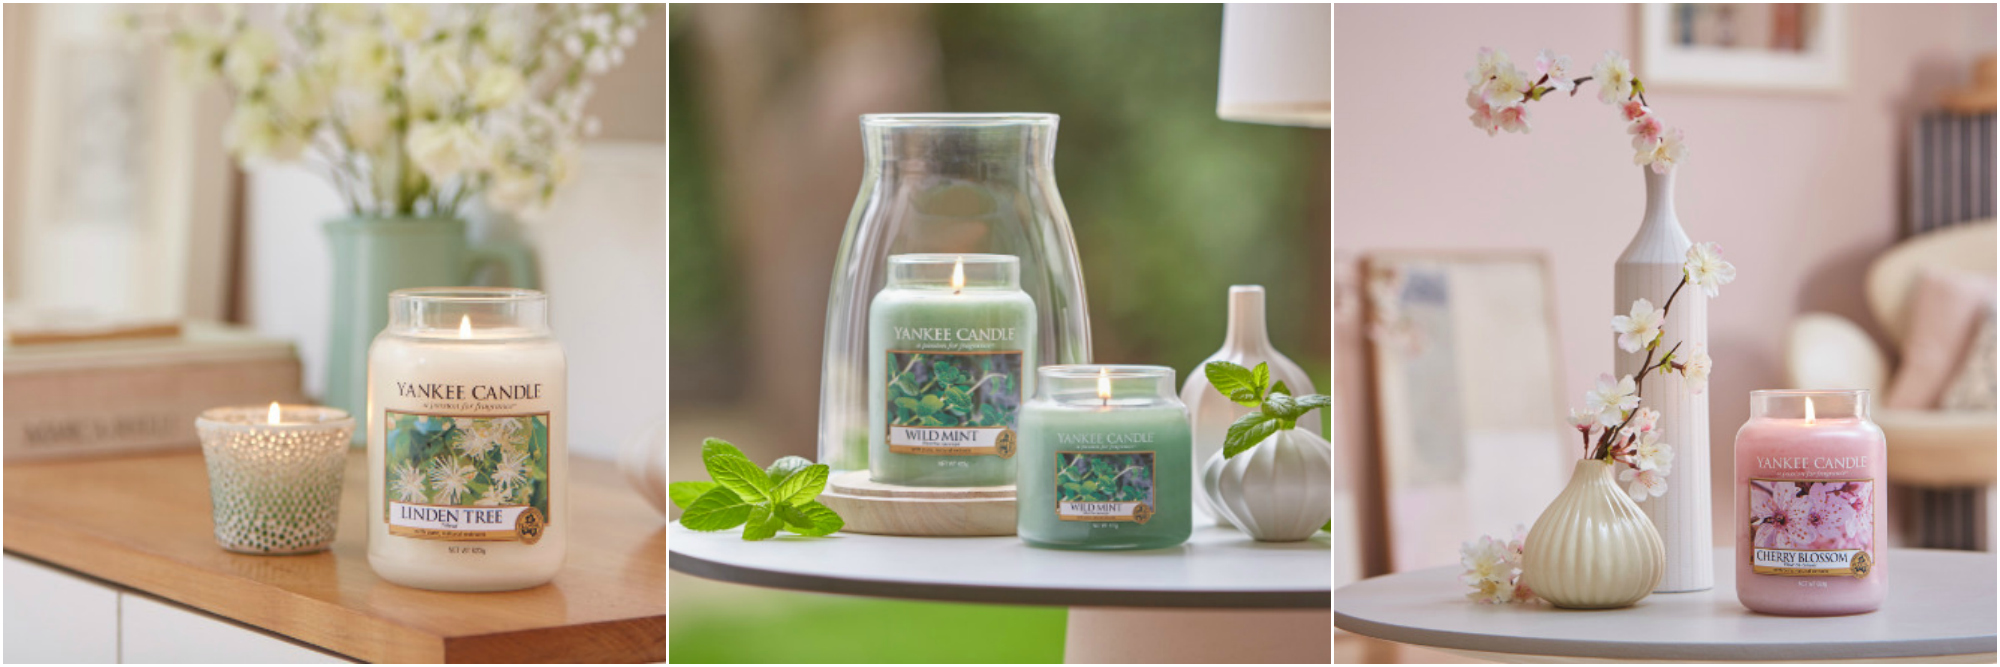 Pure Essence Yankee Candle 2017